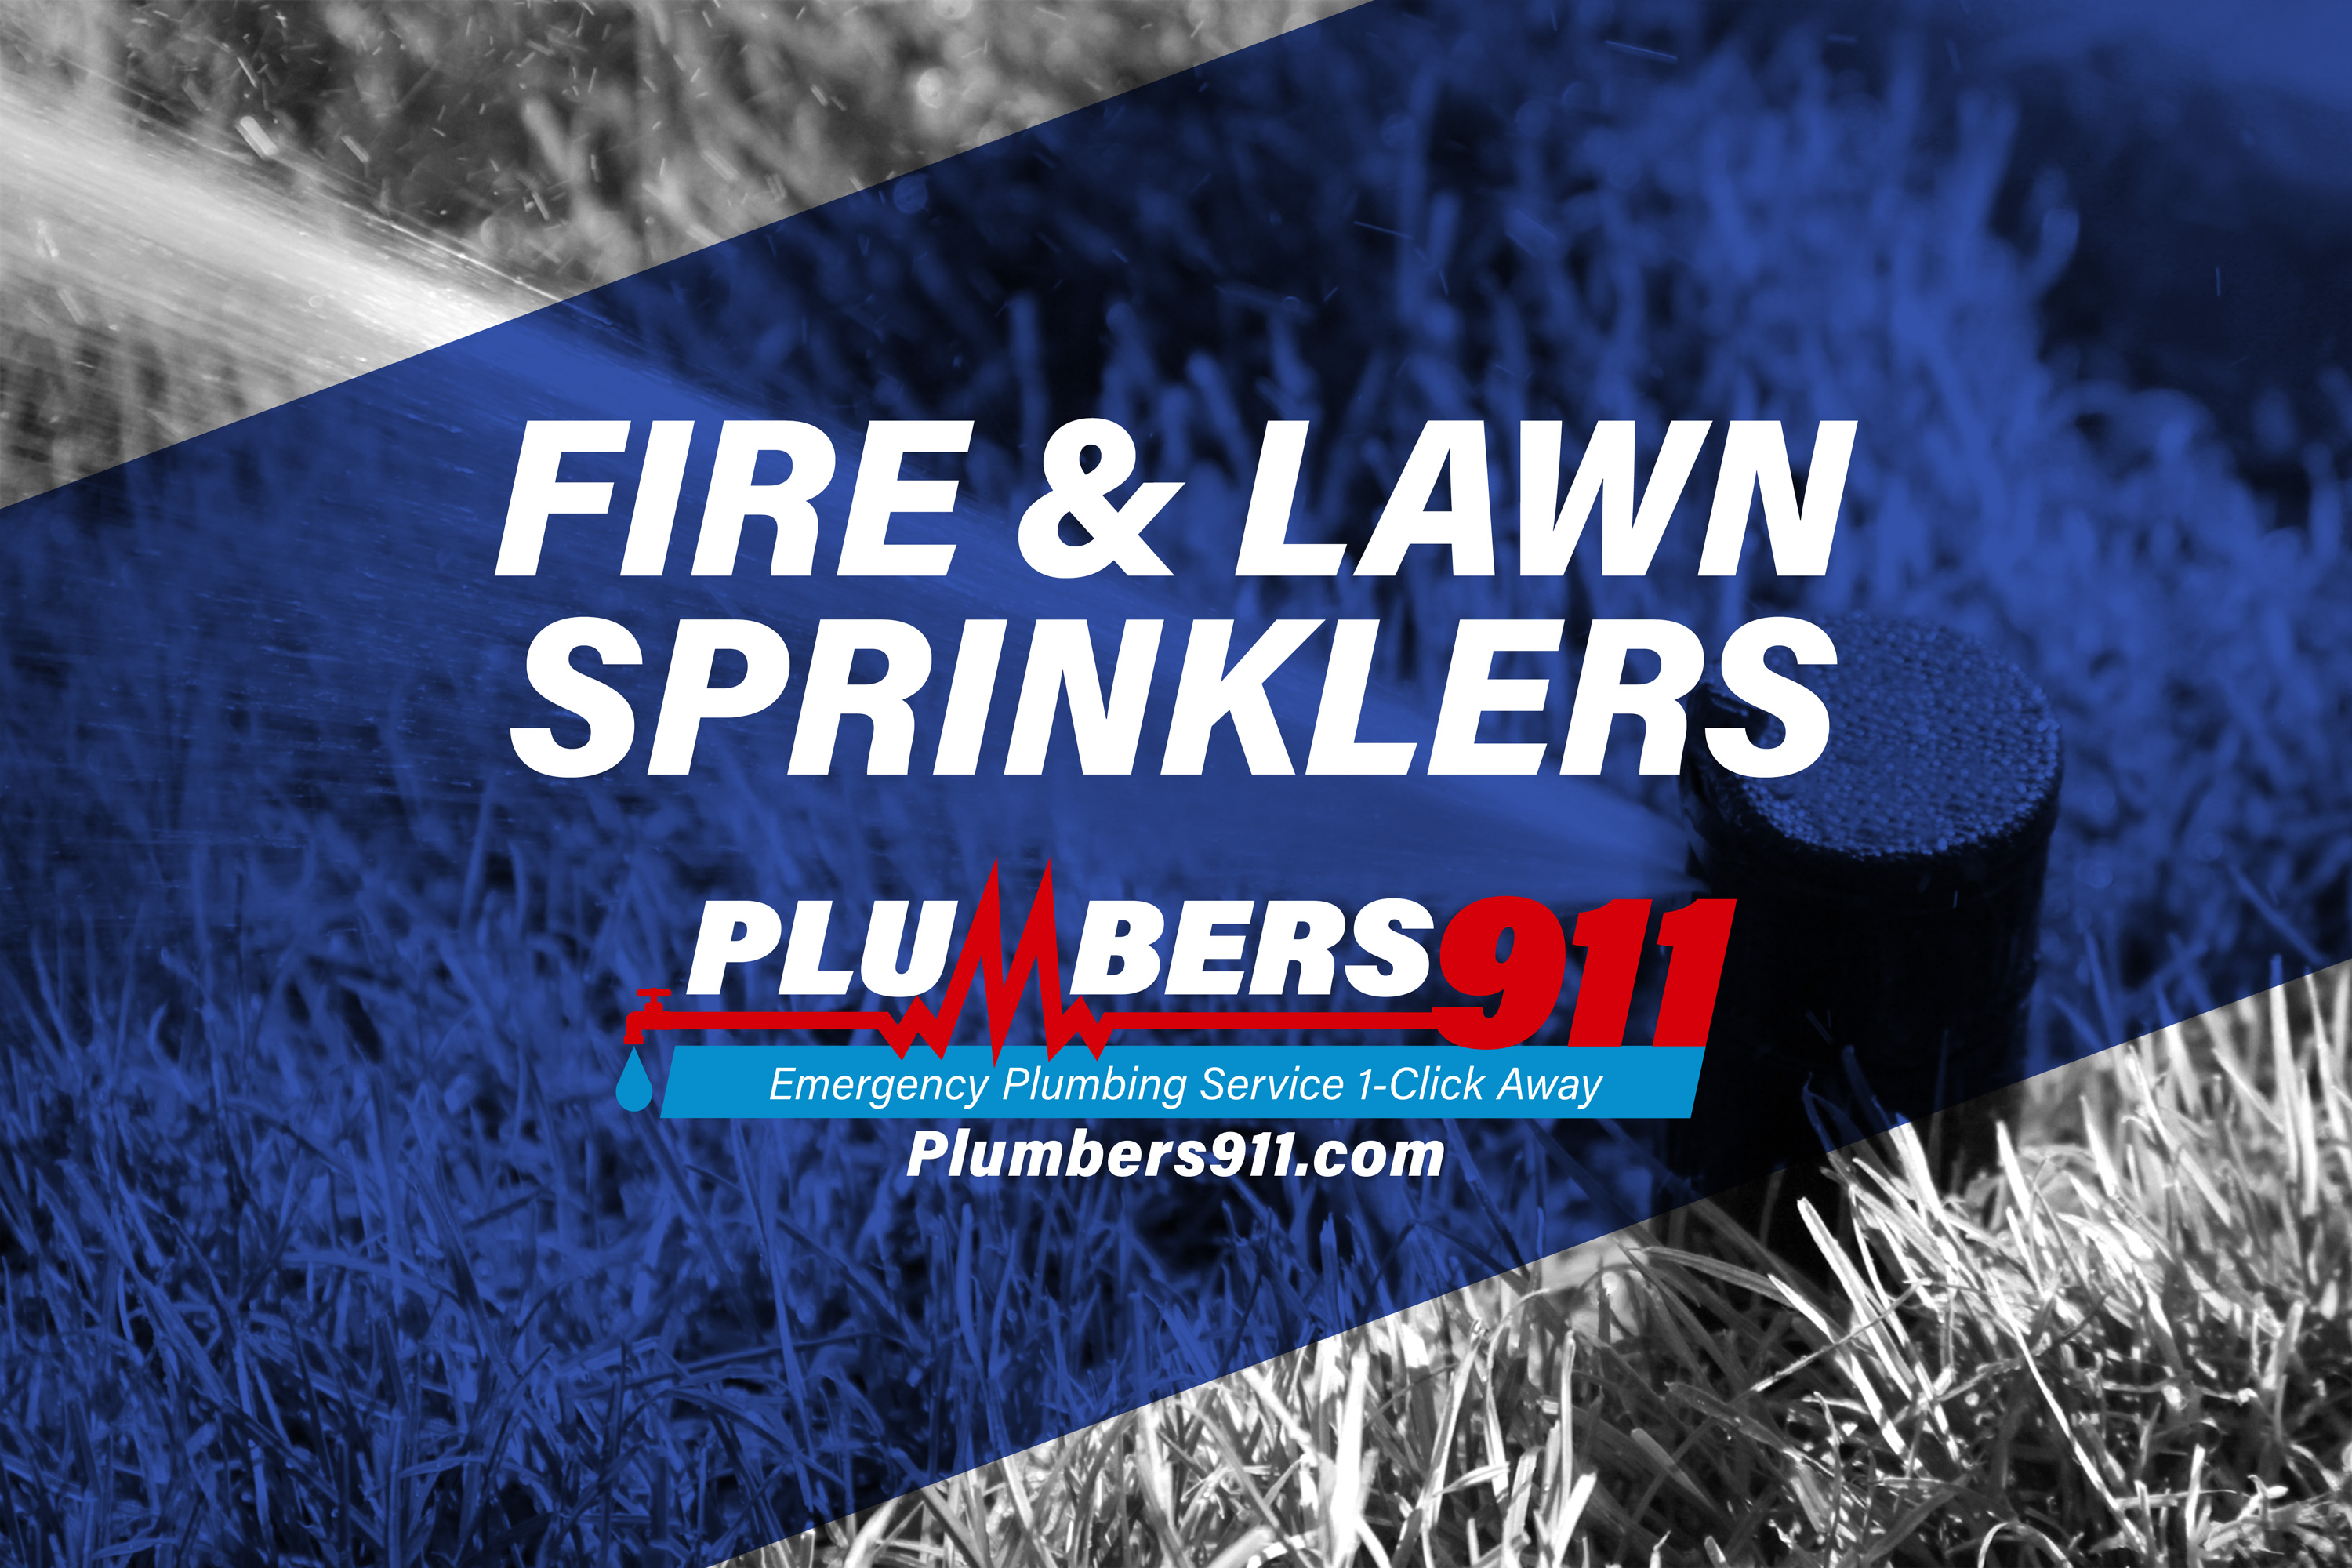 Plumbers 911 - Emergency Plumbing Services - Fire and Lawn Sprinklers